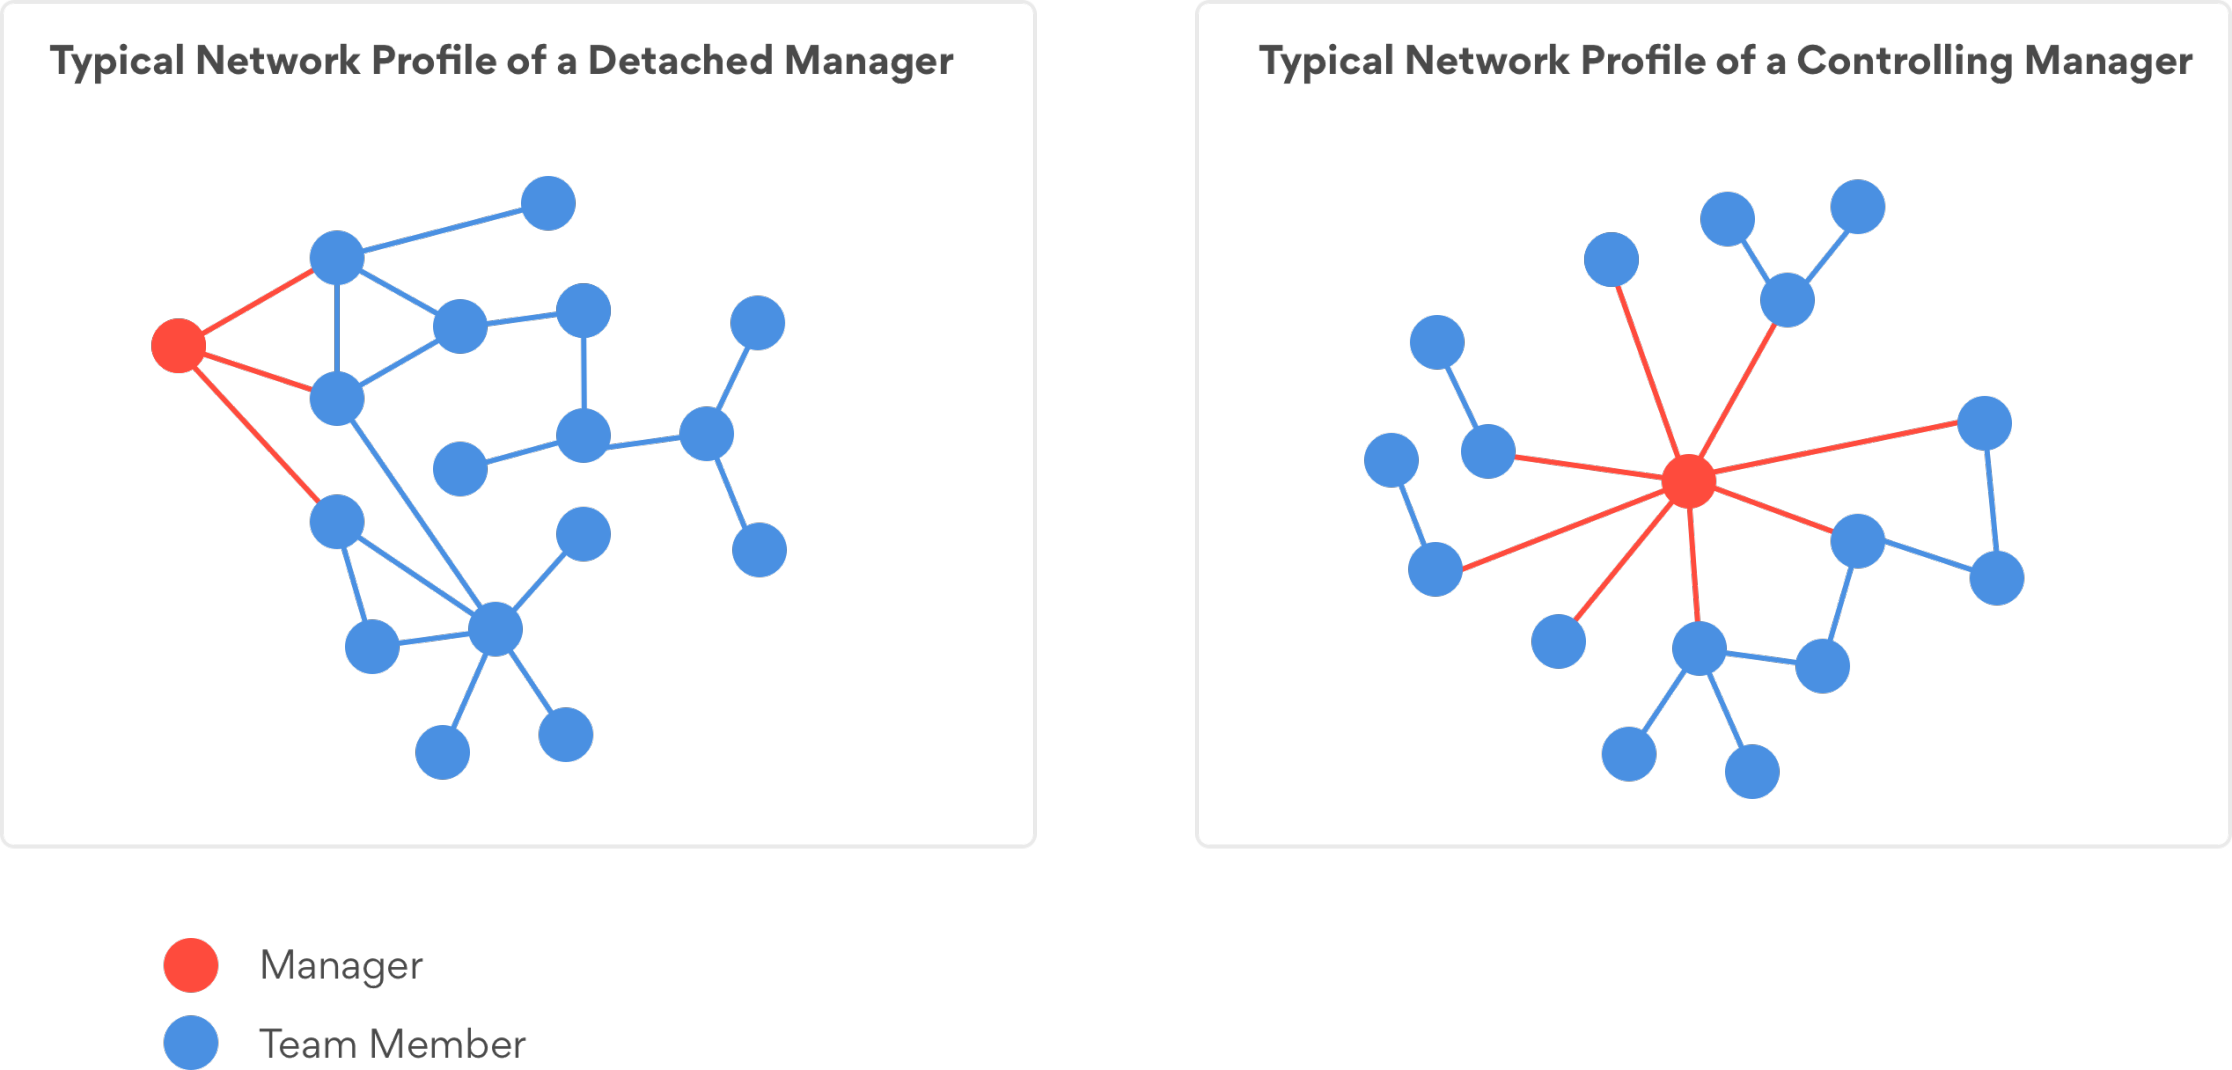 FIG 3:    Example of a network analysis for detecting manager proximity. Comparing two extreme cases of highly detached and controlling managers (Source: Philip Arkcoll)